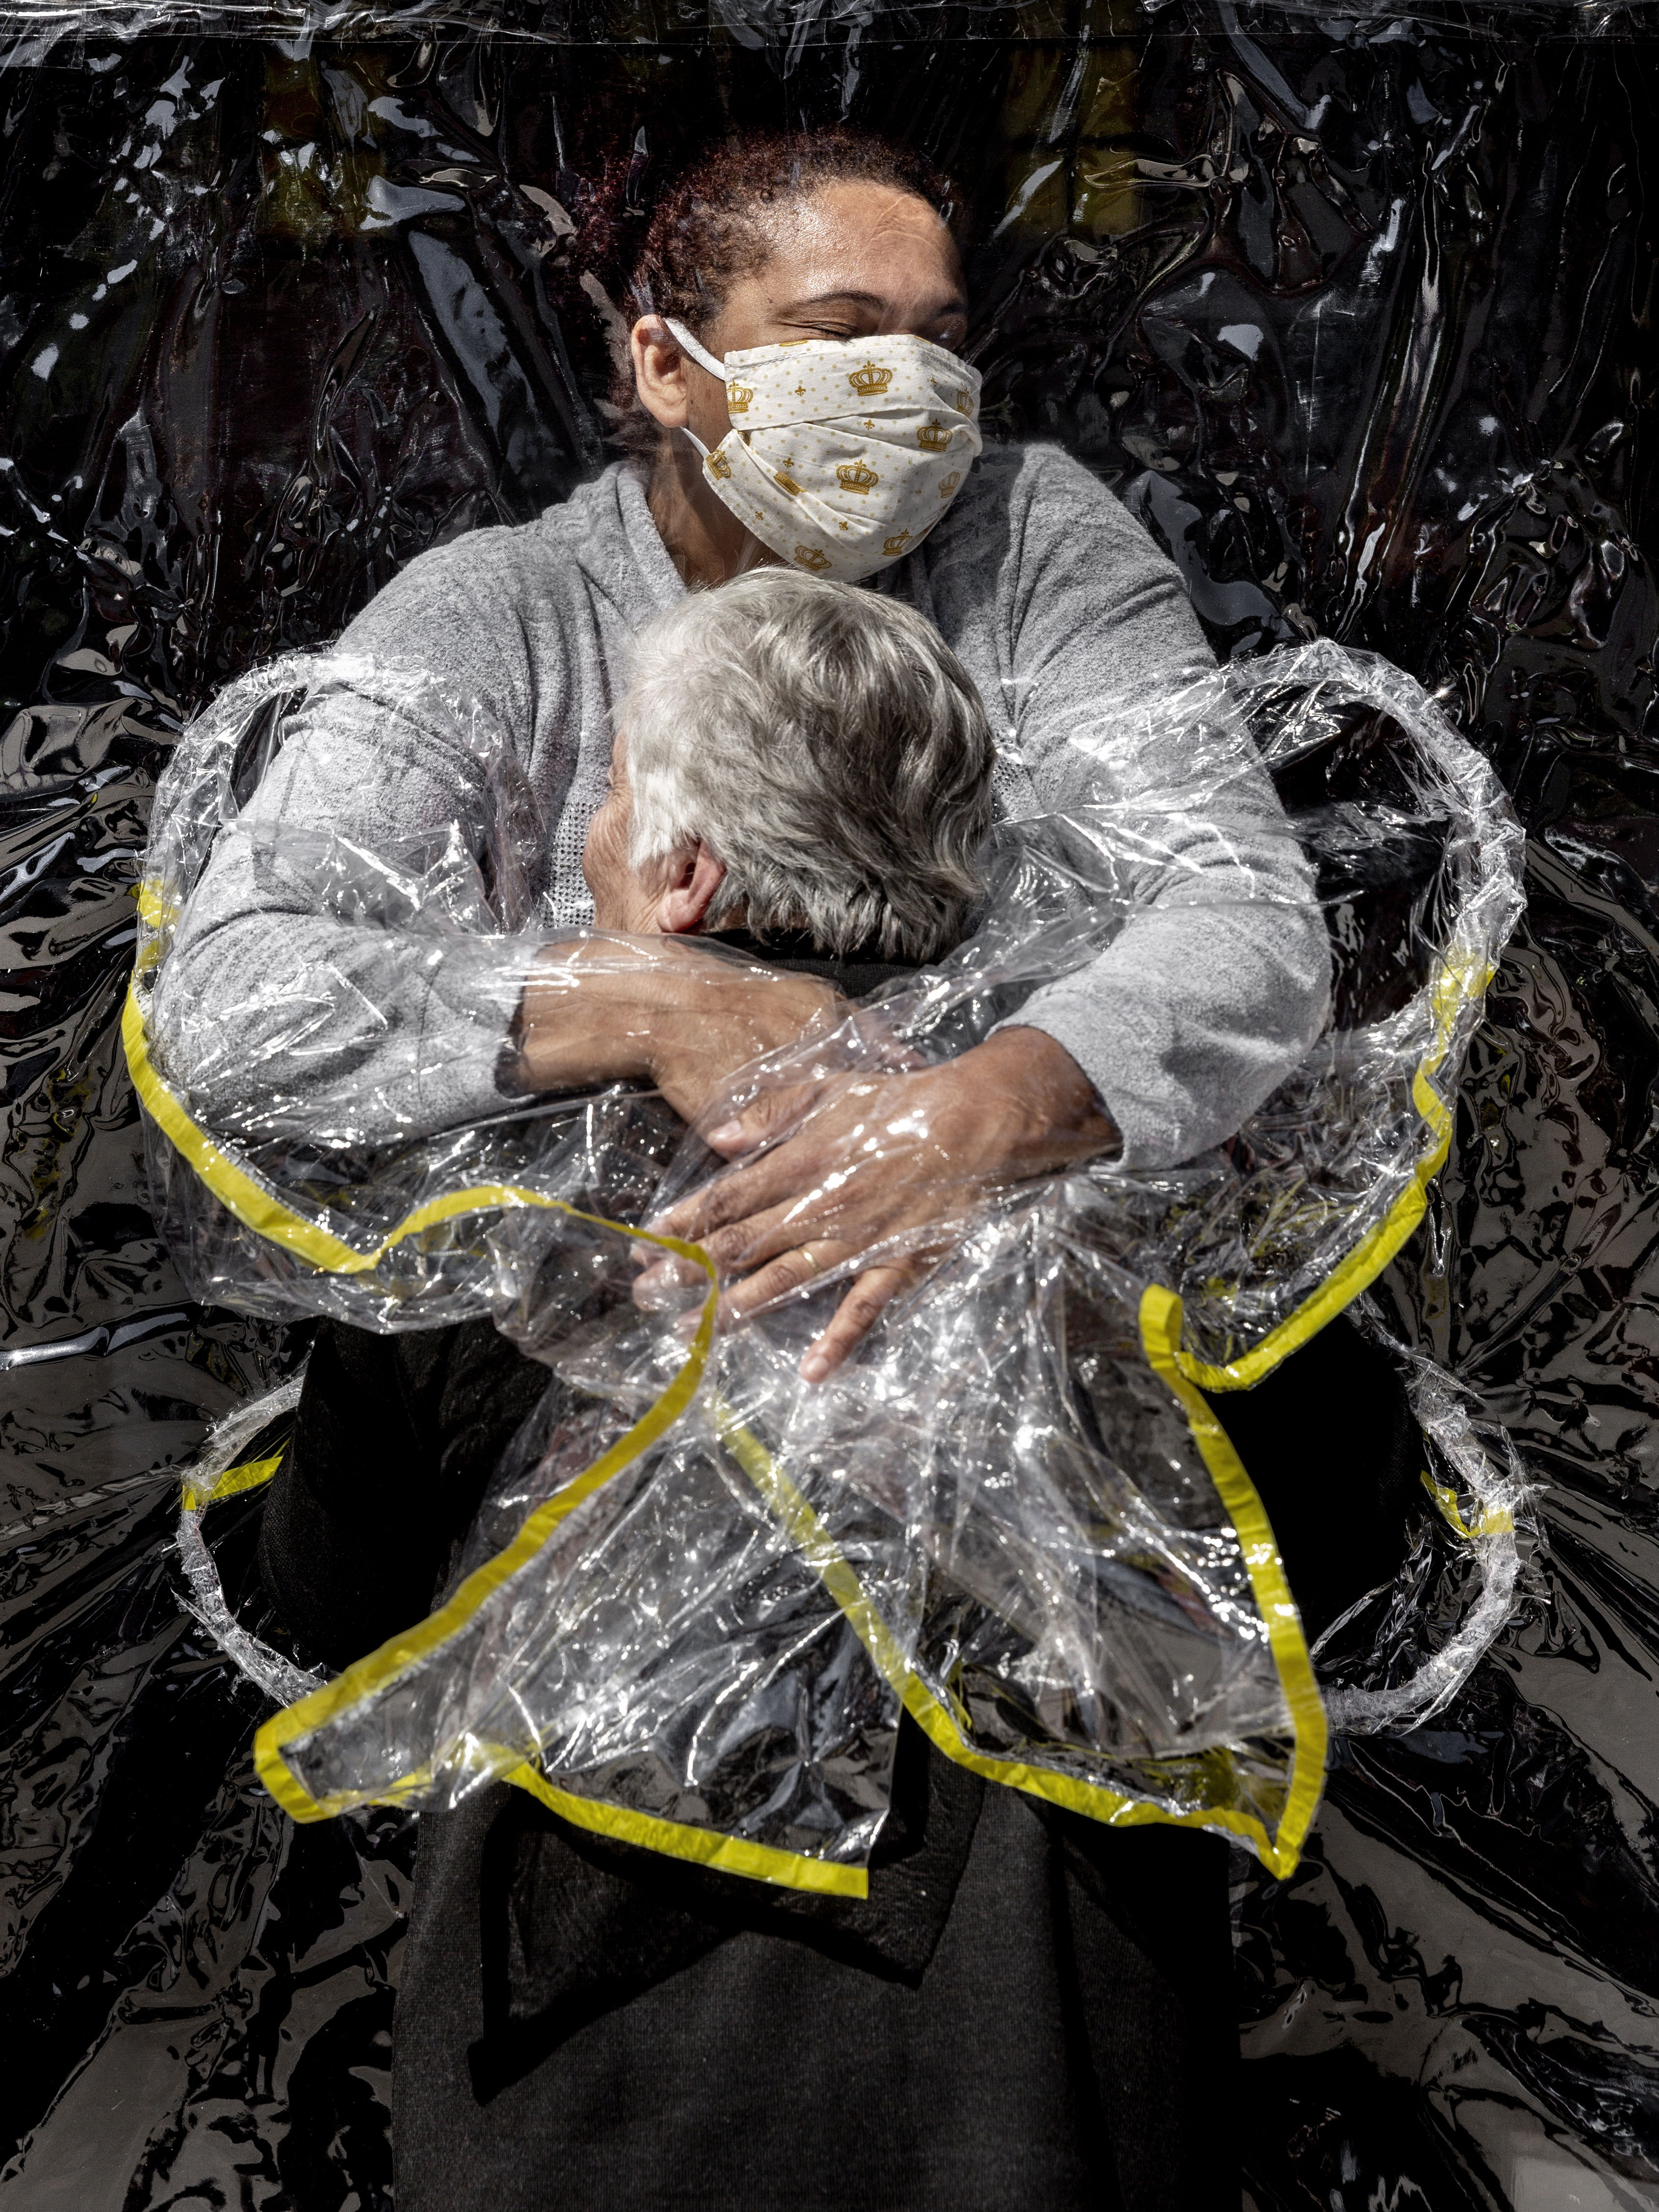 'The first hug', by the Danish Mads Nissen, photo of the year in the World Press Photo 2021 contest.